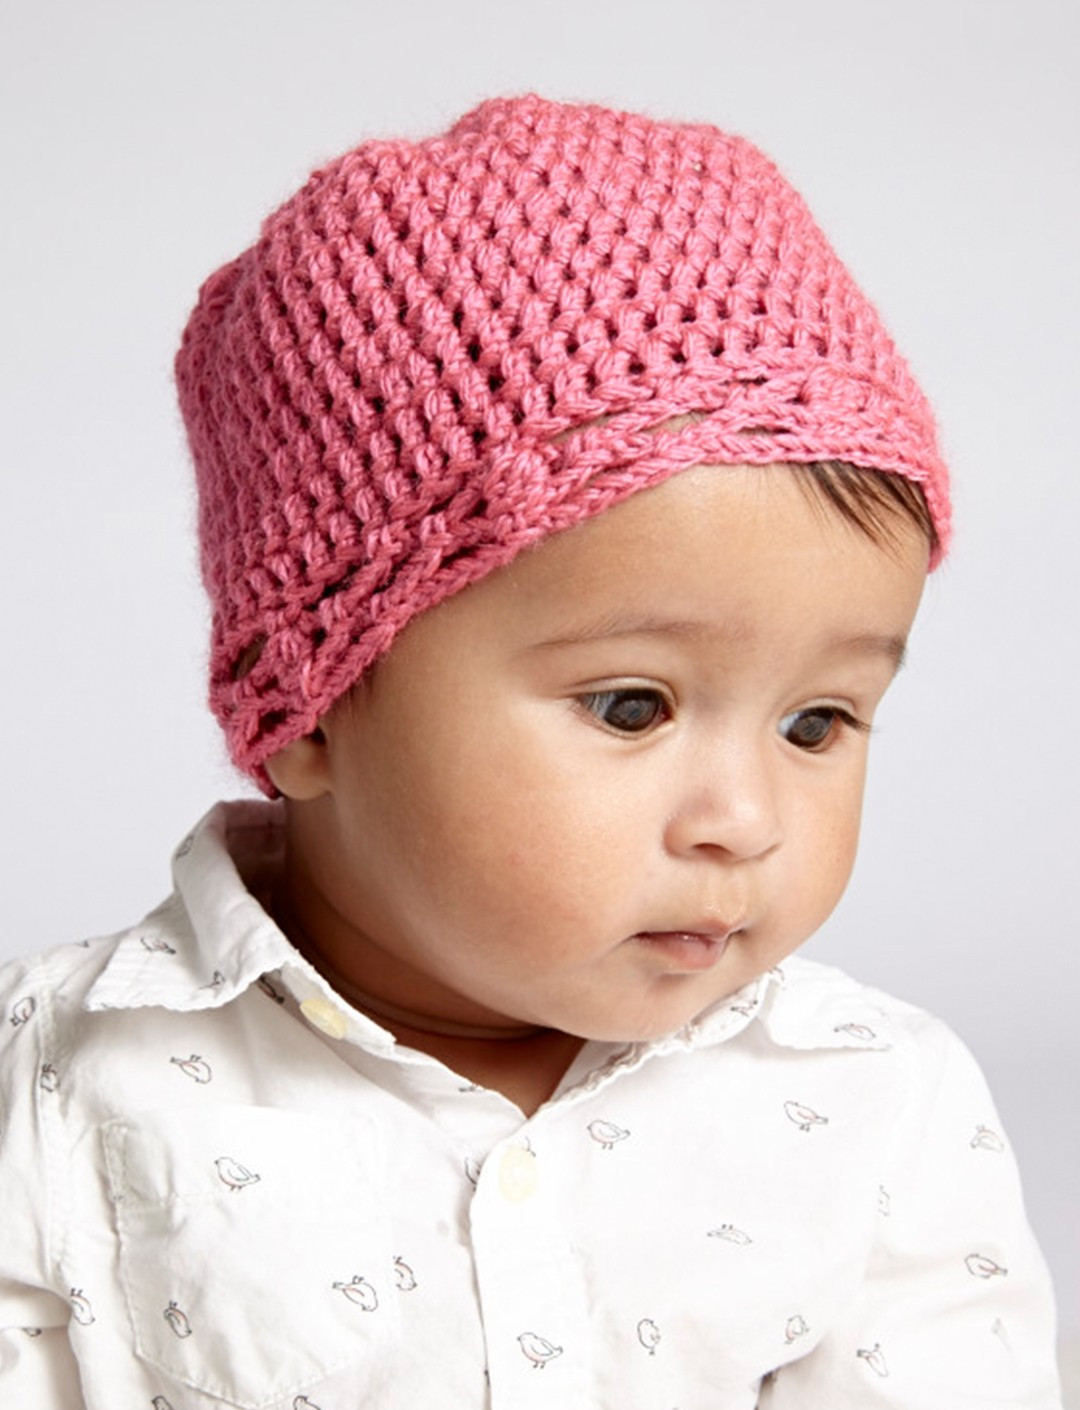 Free Crochet Baby Hat Patterns Unique Bernat Crochet Baby Hat Crochet Pattern Of Adorable 48 Pics Free Crochet Baby Hat Patterns